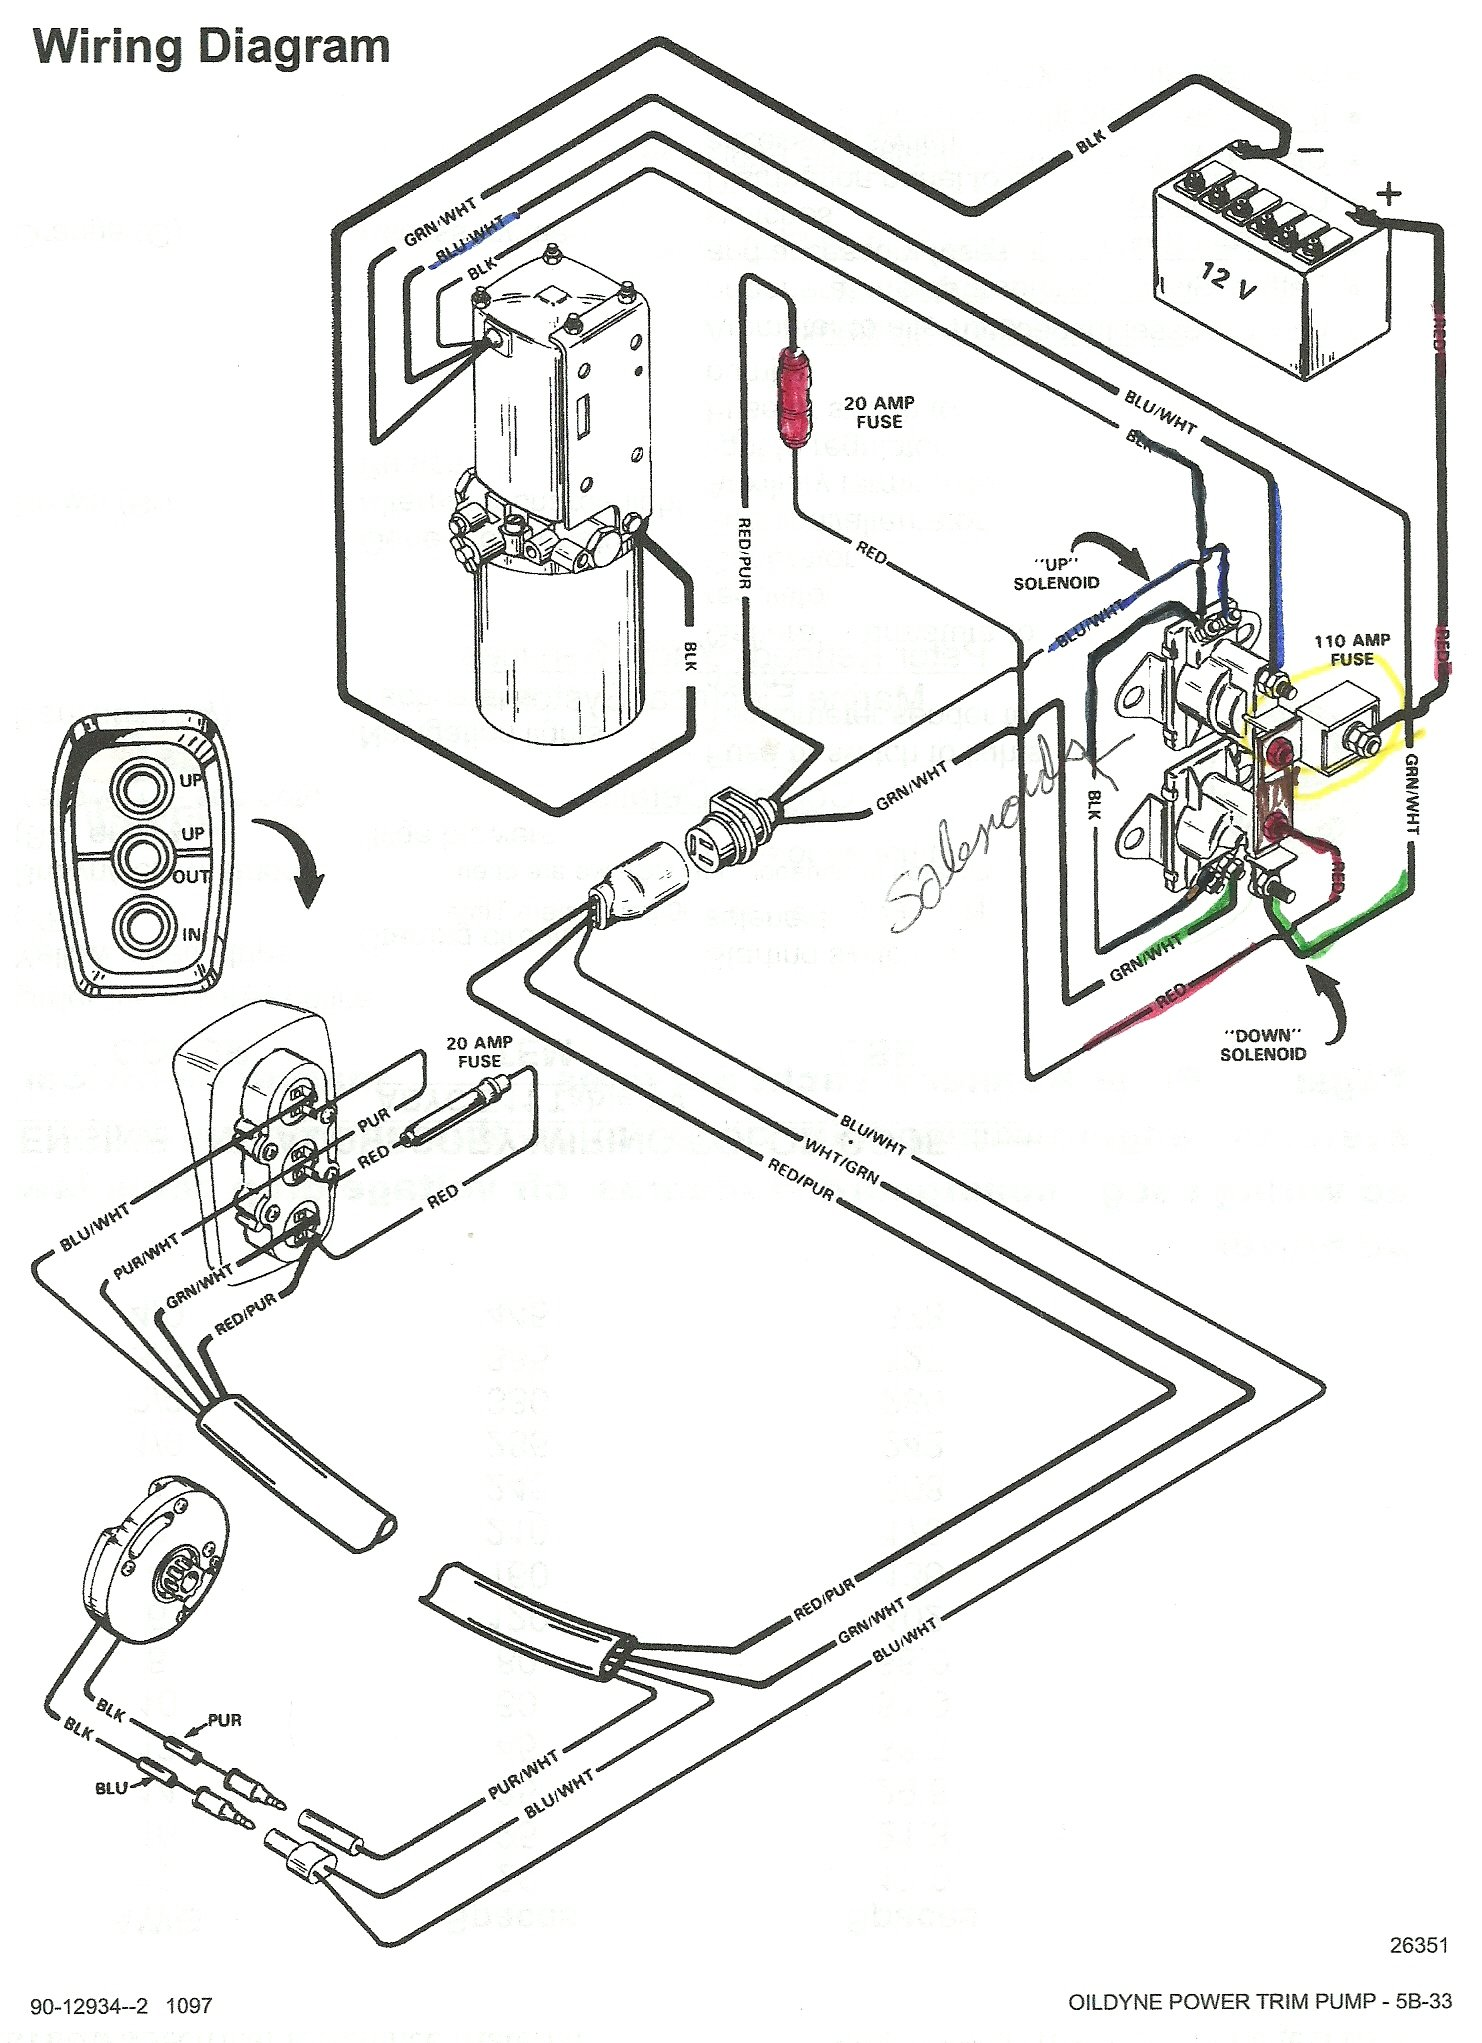 Wiring Diagram Help How Does This Work